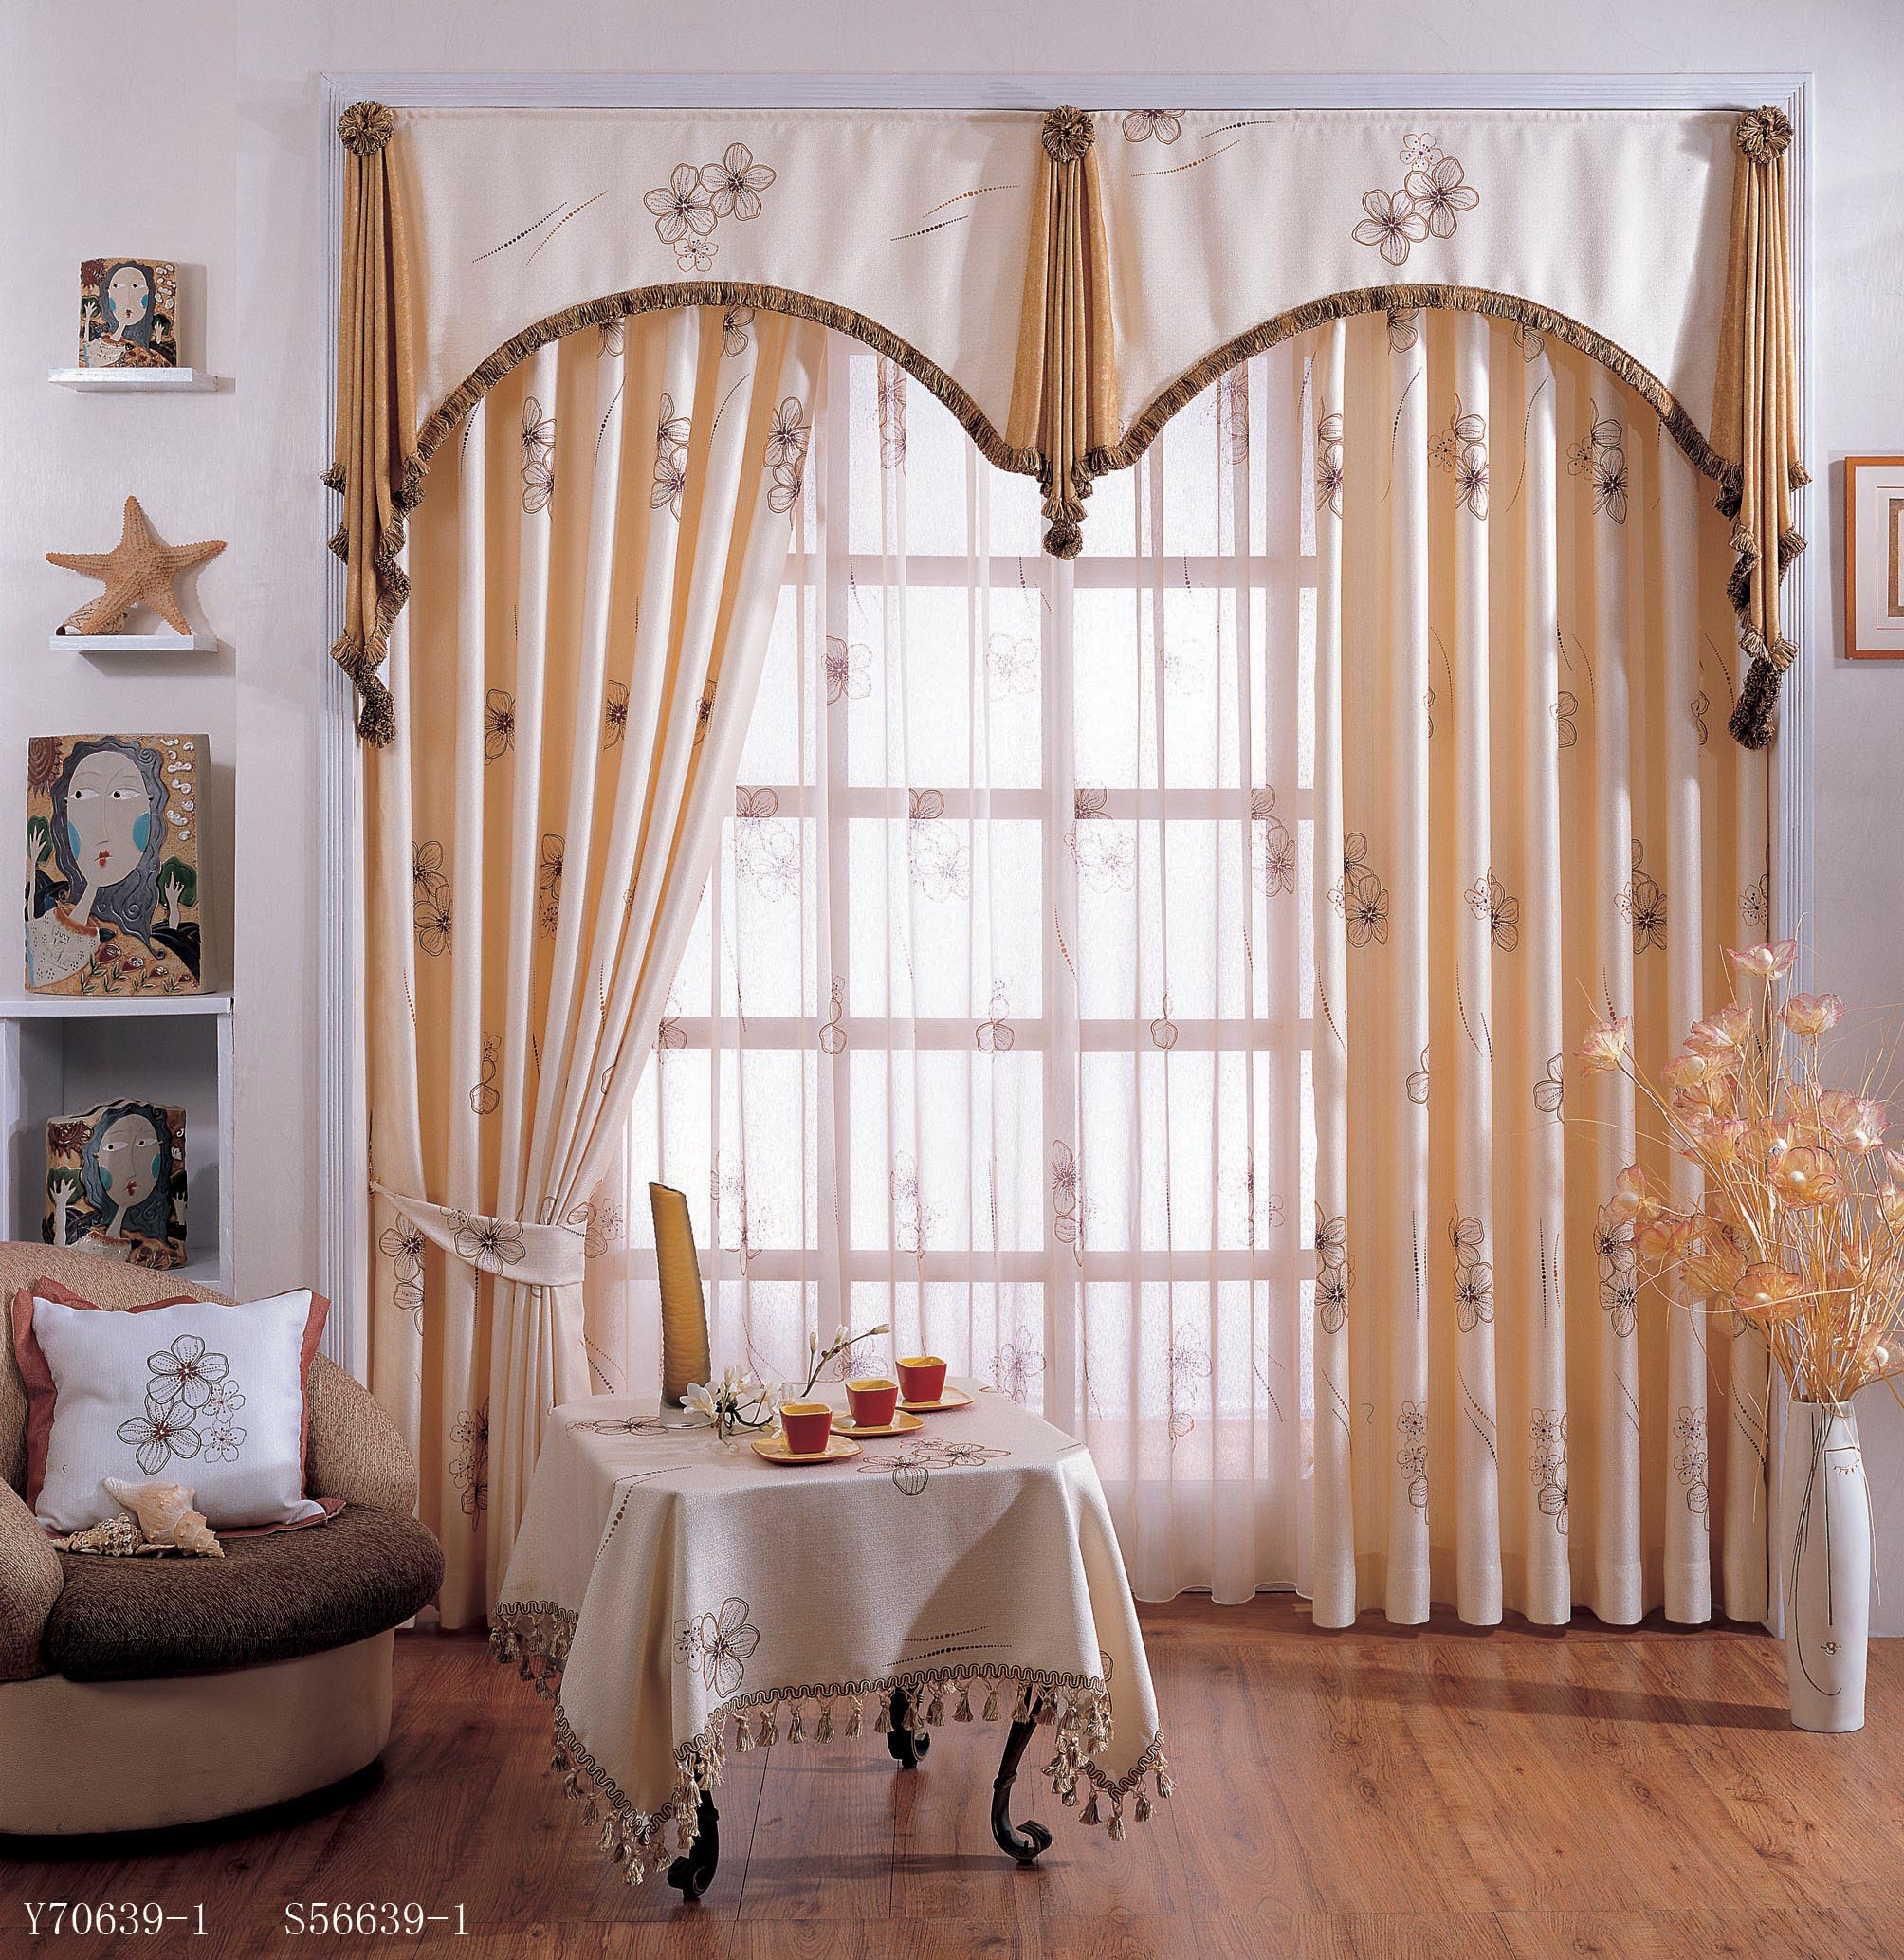 Curtain Valances For Living Room Window Treatments Design Ideas